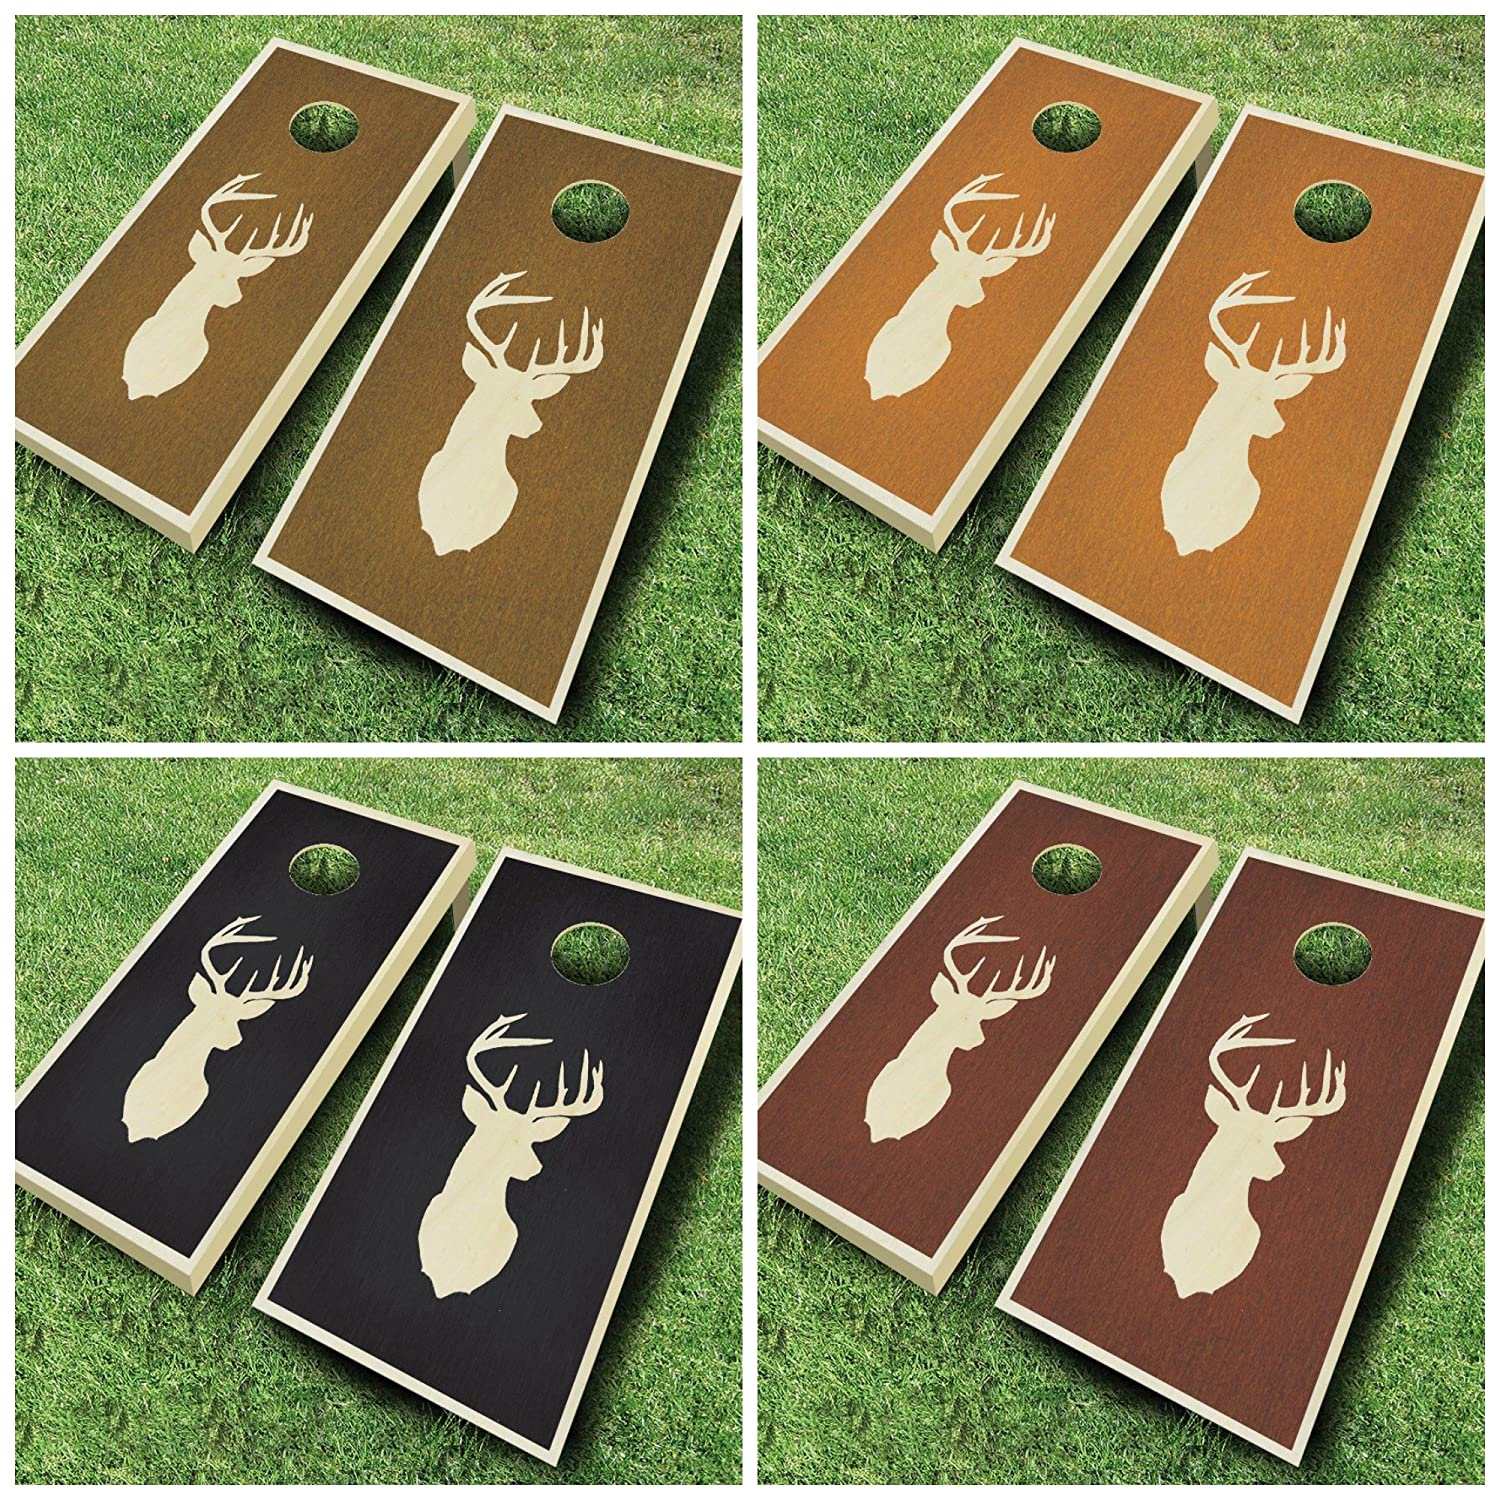 Buck 白いtail Deer Hunting Stained Cornholeボードregulation sizeゲームセットBean Bag Toss + 8 ACA Regulation Bags Rosewood Stain